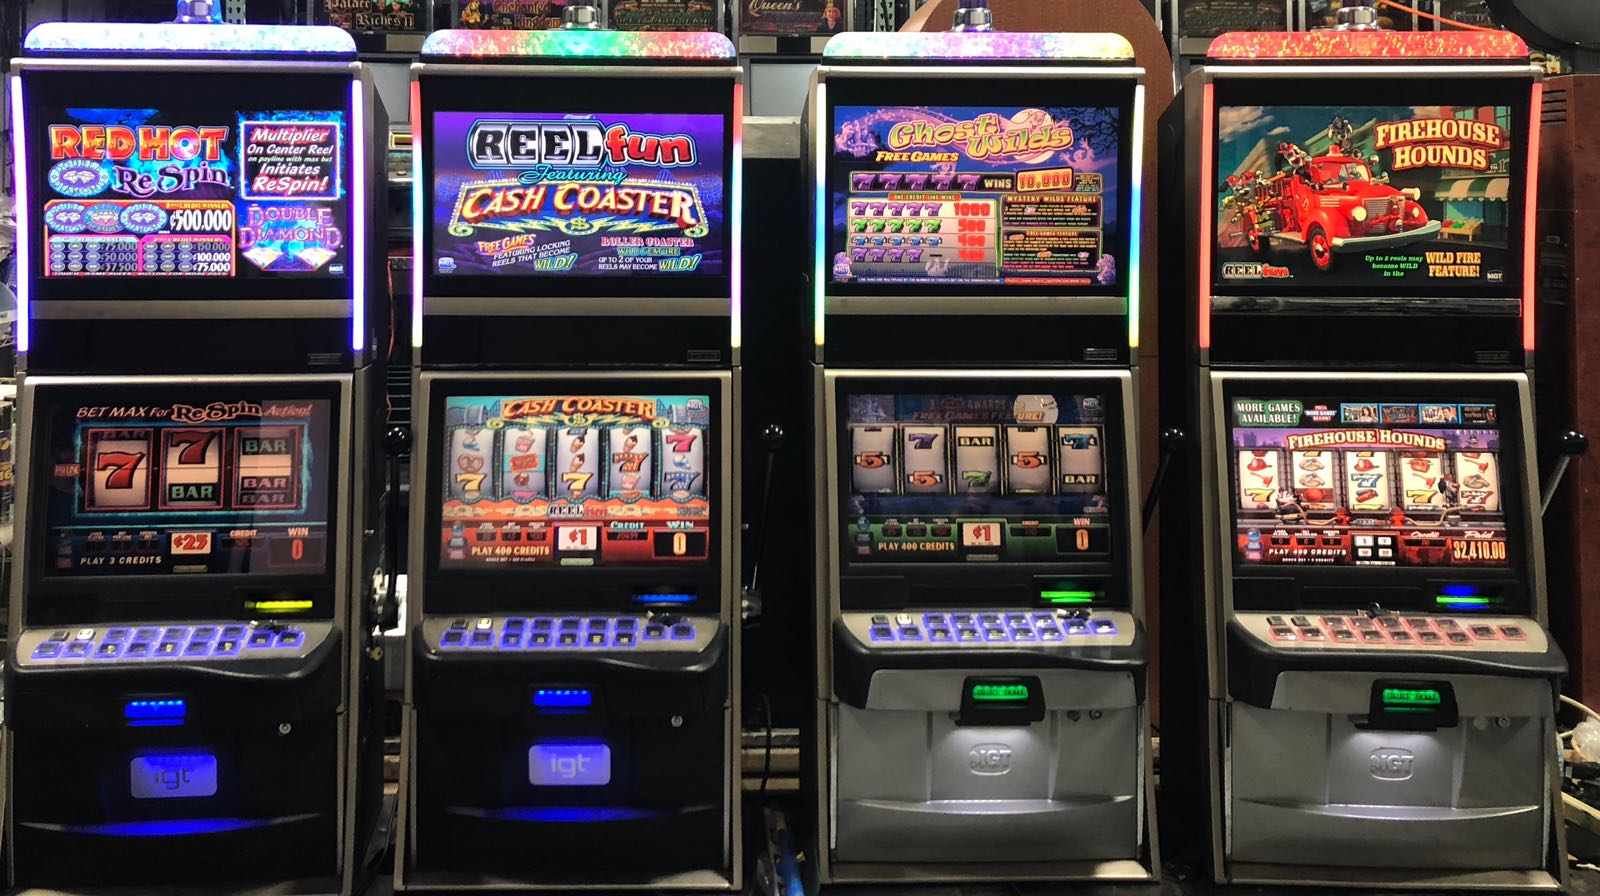 Casino slot machines for sale uk sports gambling industry statistics